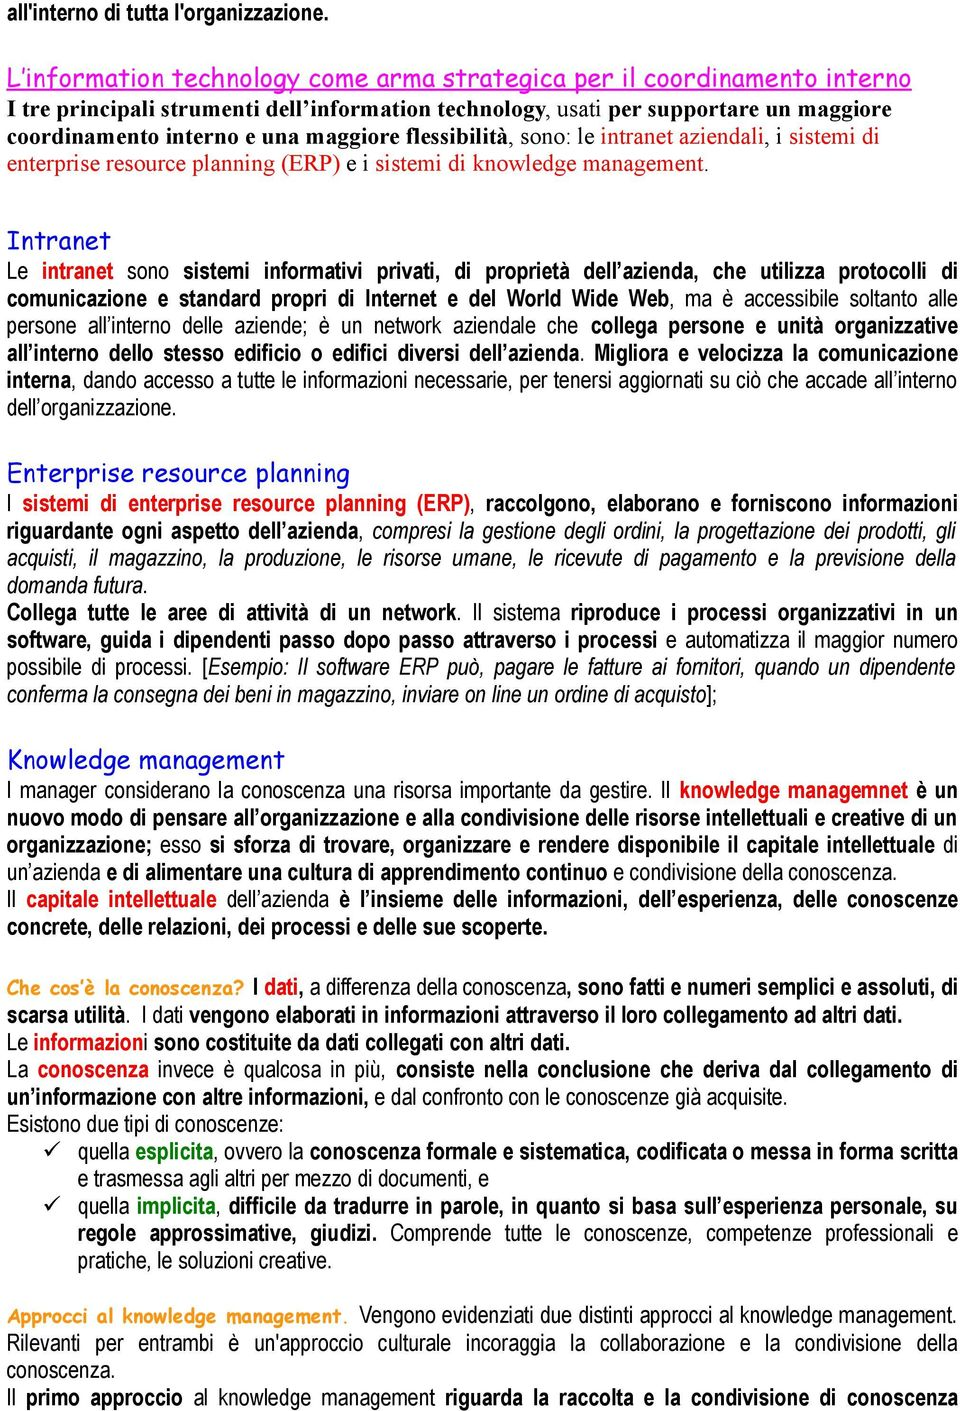 maggiore flessibilità, sono: le intranet aziendali, i sistemi di enterprise resource planning (ERP) e i sistemi di knowledge management.